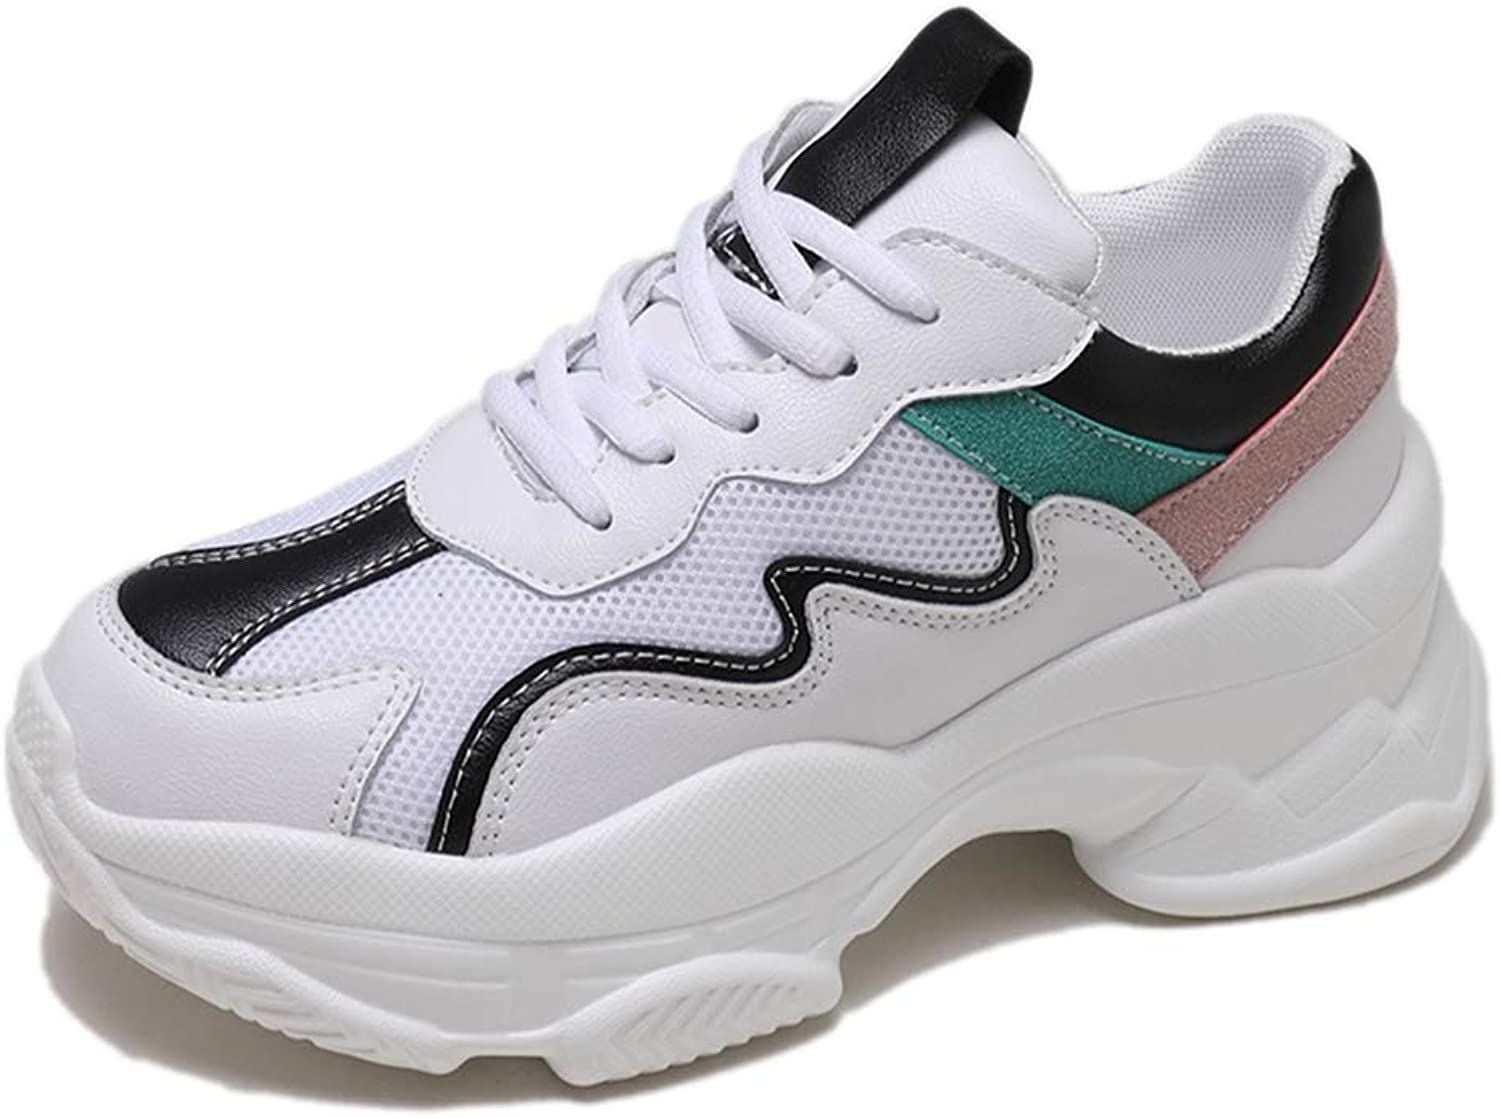 Btrada Spring Female Fashion White Platform Wedges Sneakers Women Casual Thick Soled Chunky Sneakers